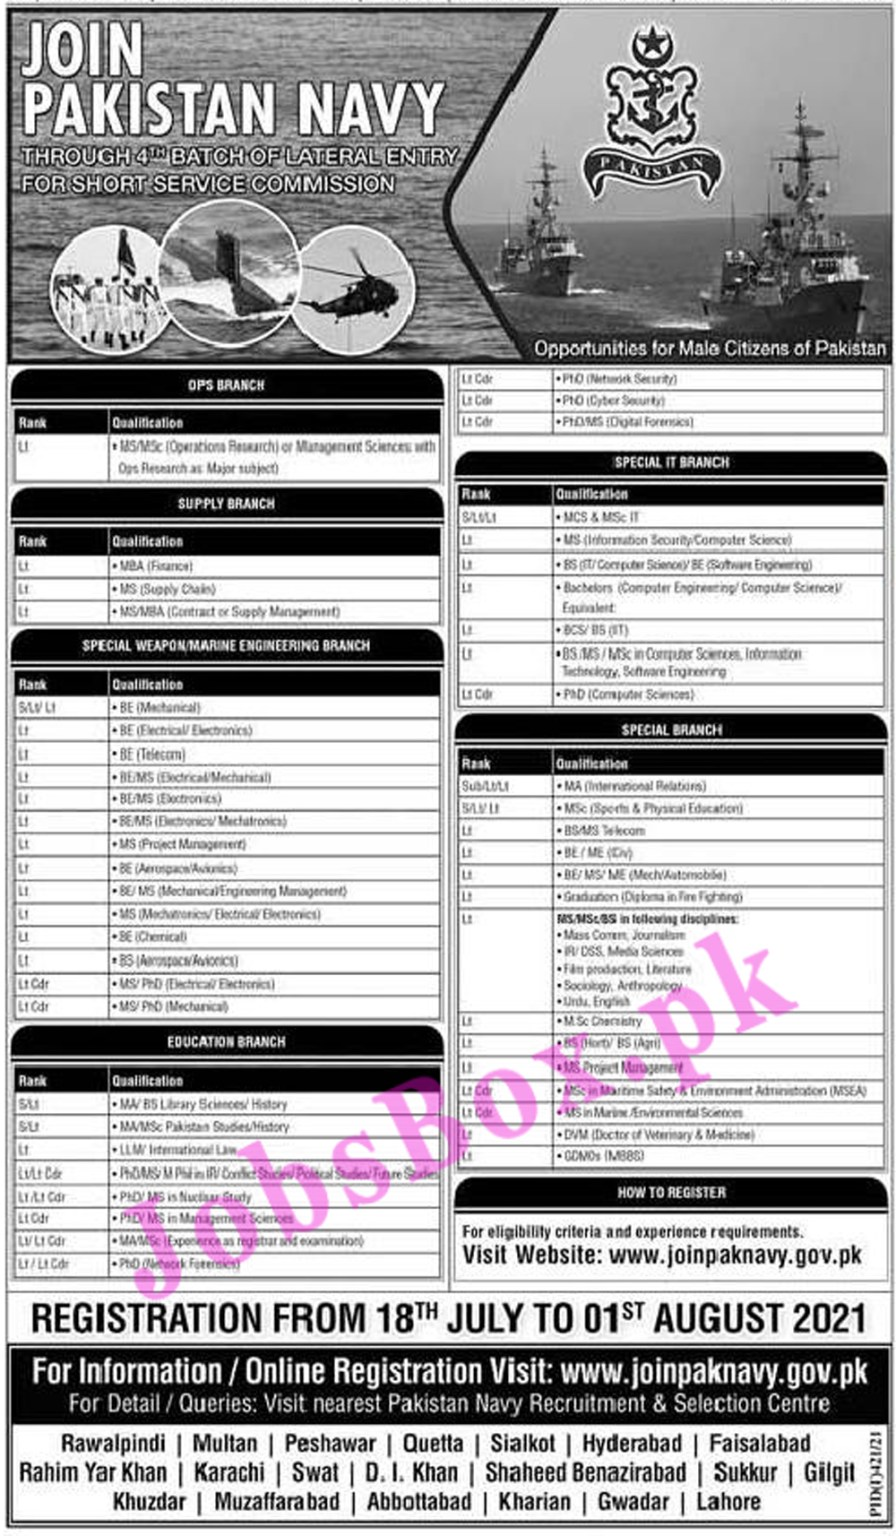 www.joinpaknavy.gov.pk Jobs 2021 - Join Pakistan Navy Through 4th Batch of Lateral Entery For Short Service Commission Jobs 2021 in Pakistan